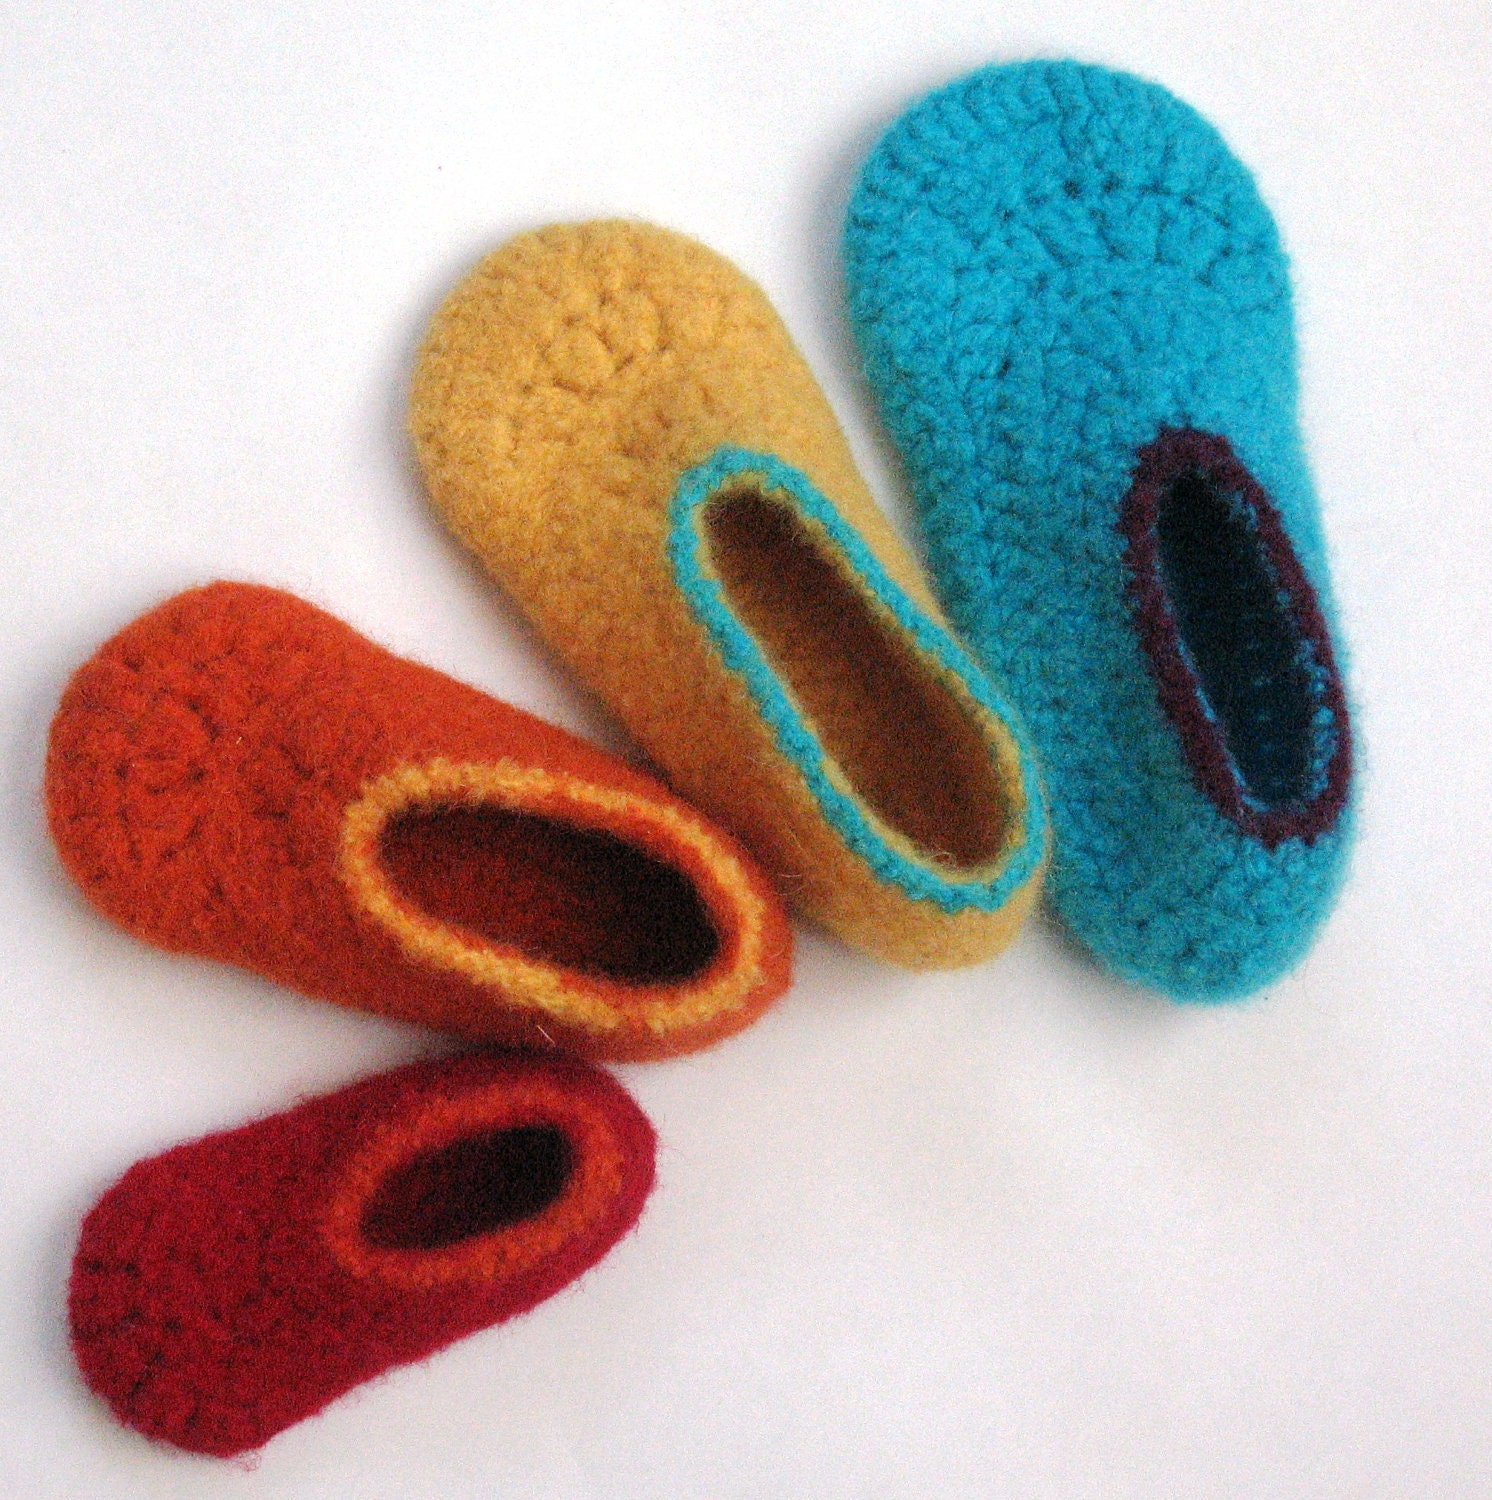 Crochet Patterns I Can Make And Sell : Felt Kids Slippers Crochet Pattern No. 7 by BallHanknSkein Etsy